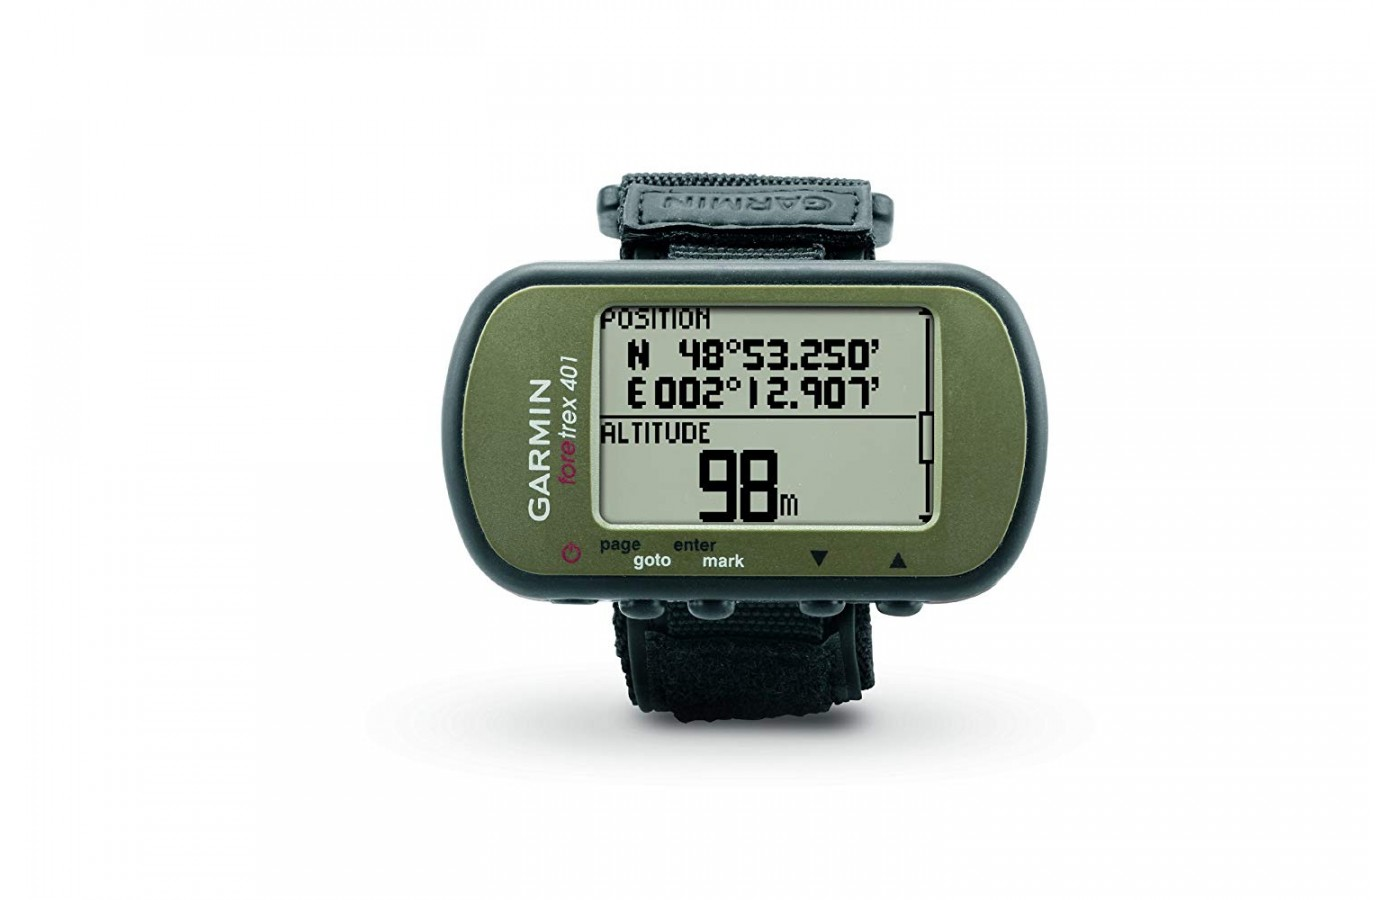 Keep track of altitude and bearings with the barometric altimeter and electronic compass.